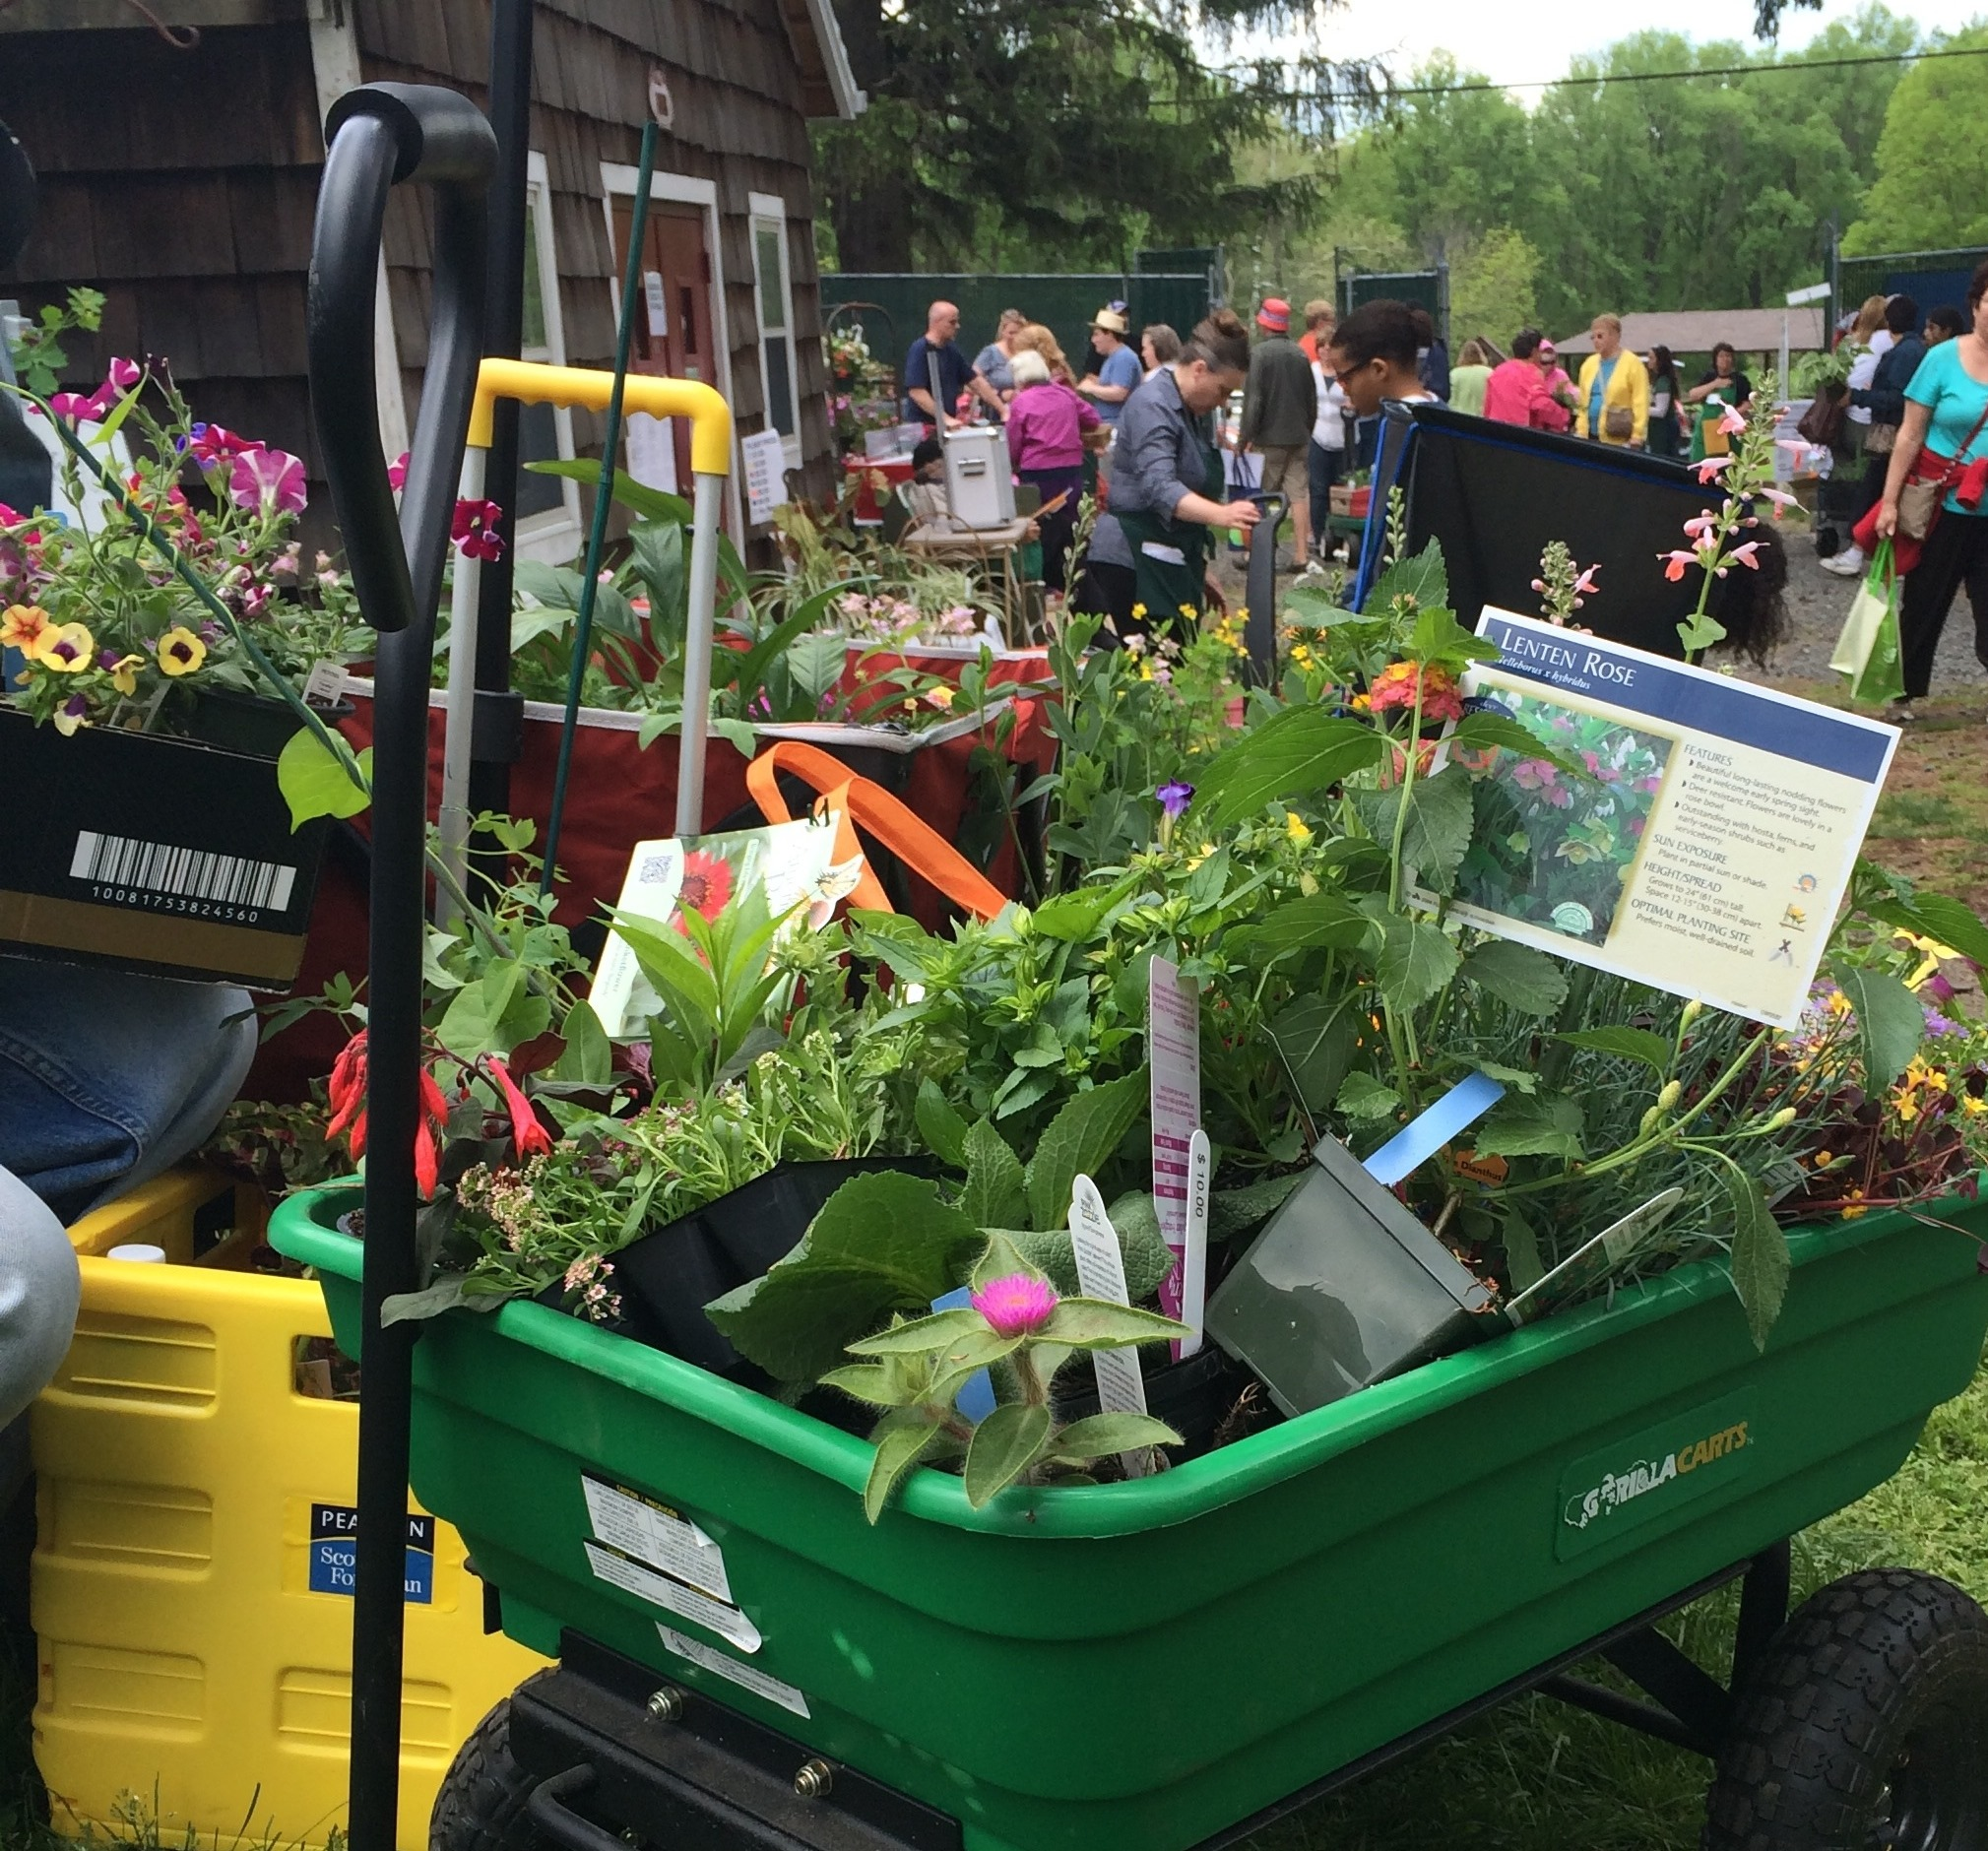 Roses In Garden: 52 Great Things To Do In Union County This Year